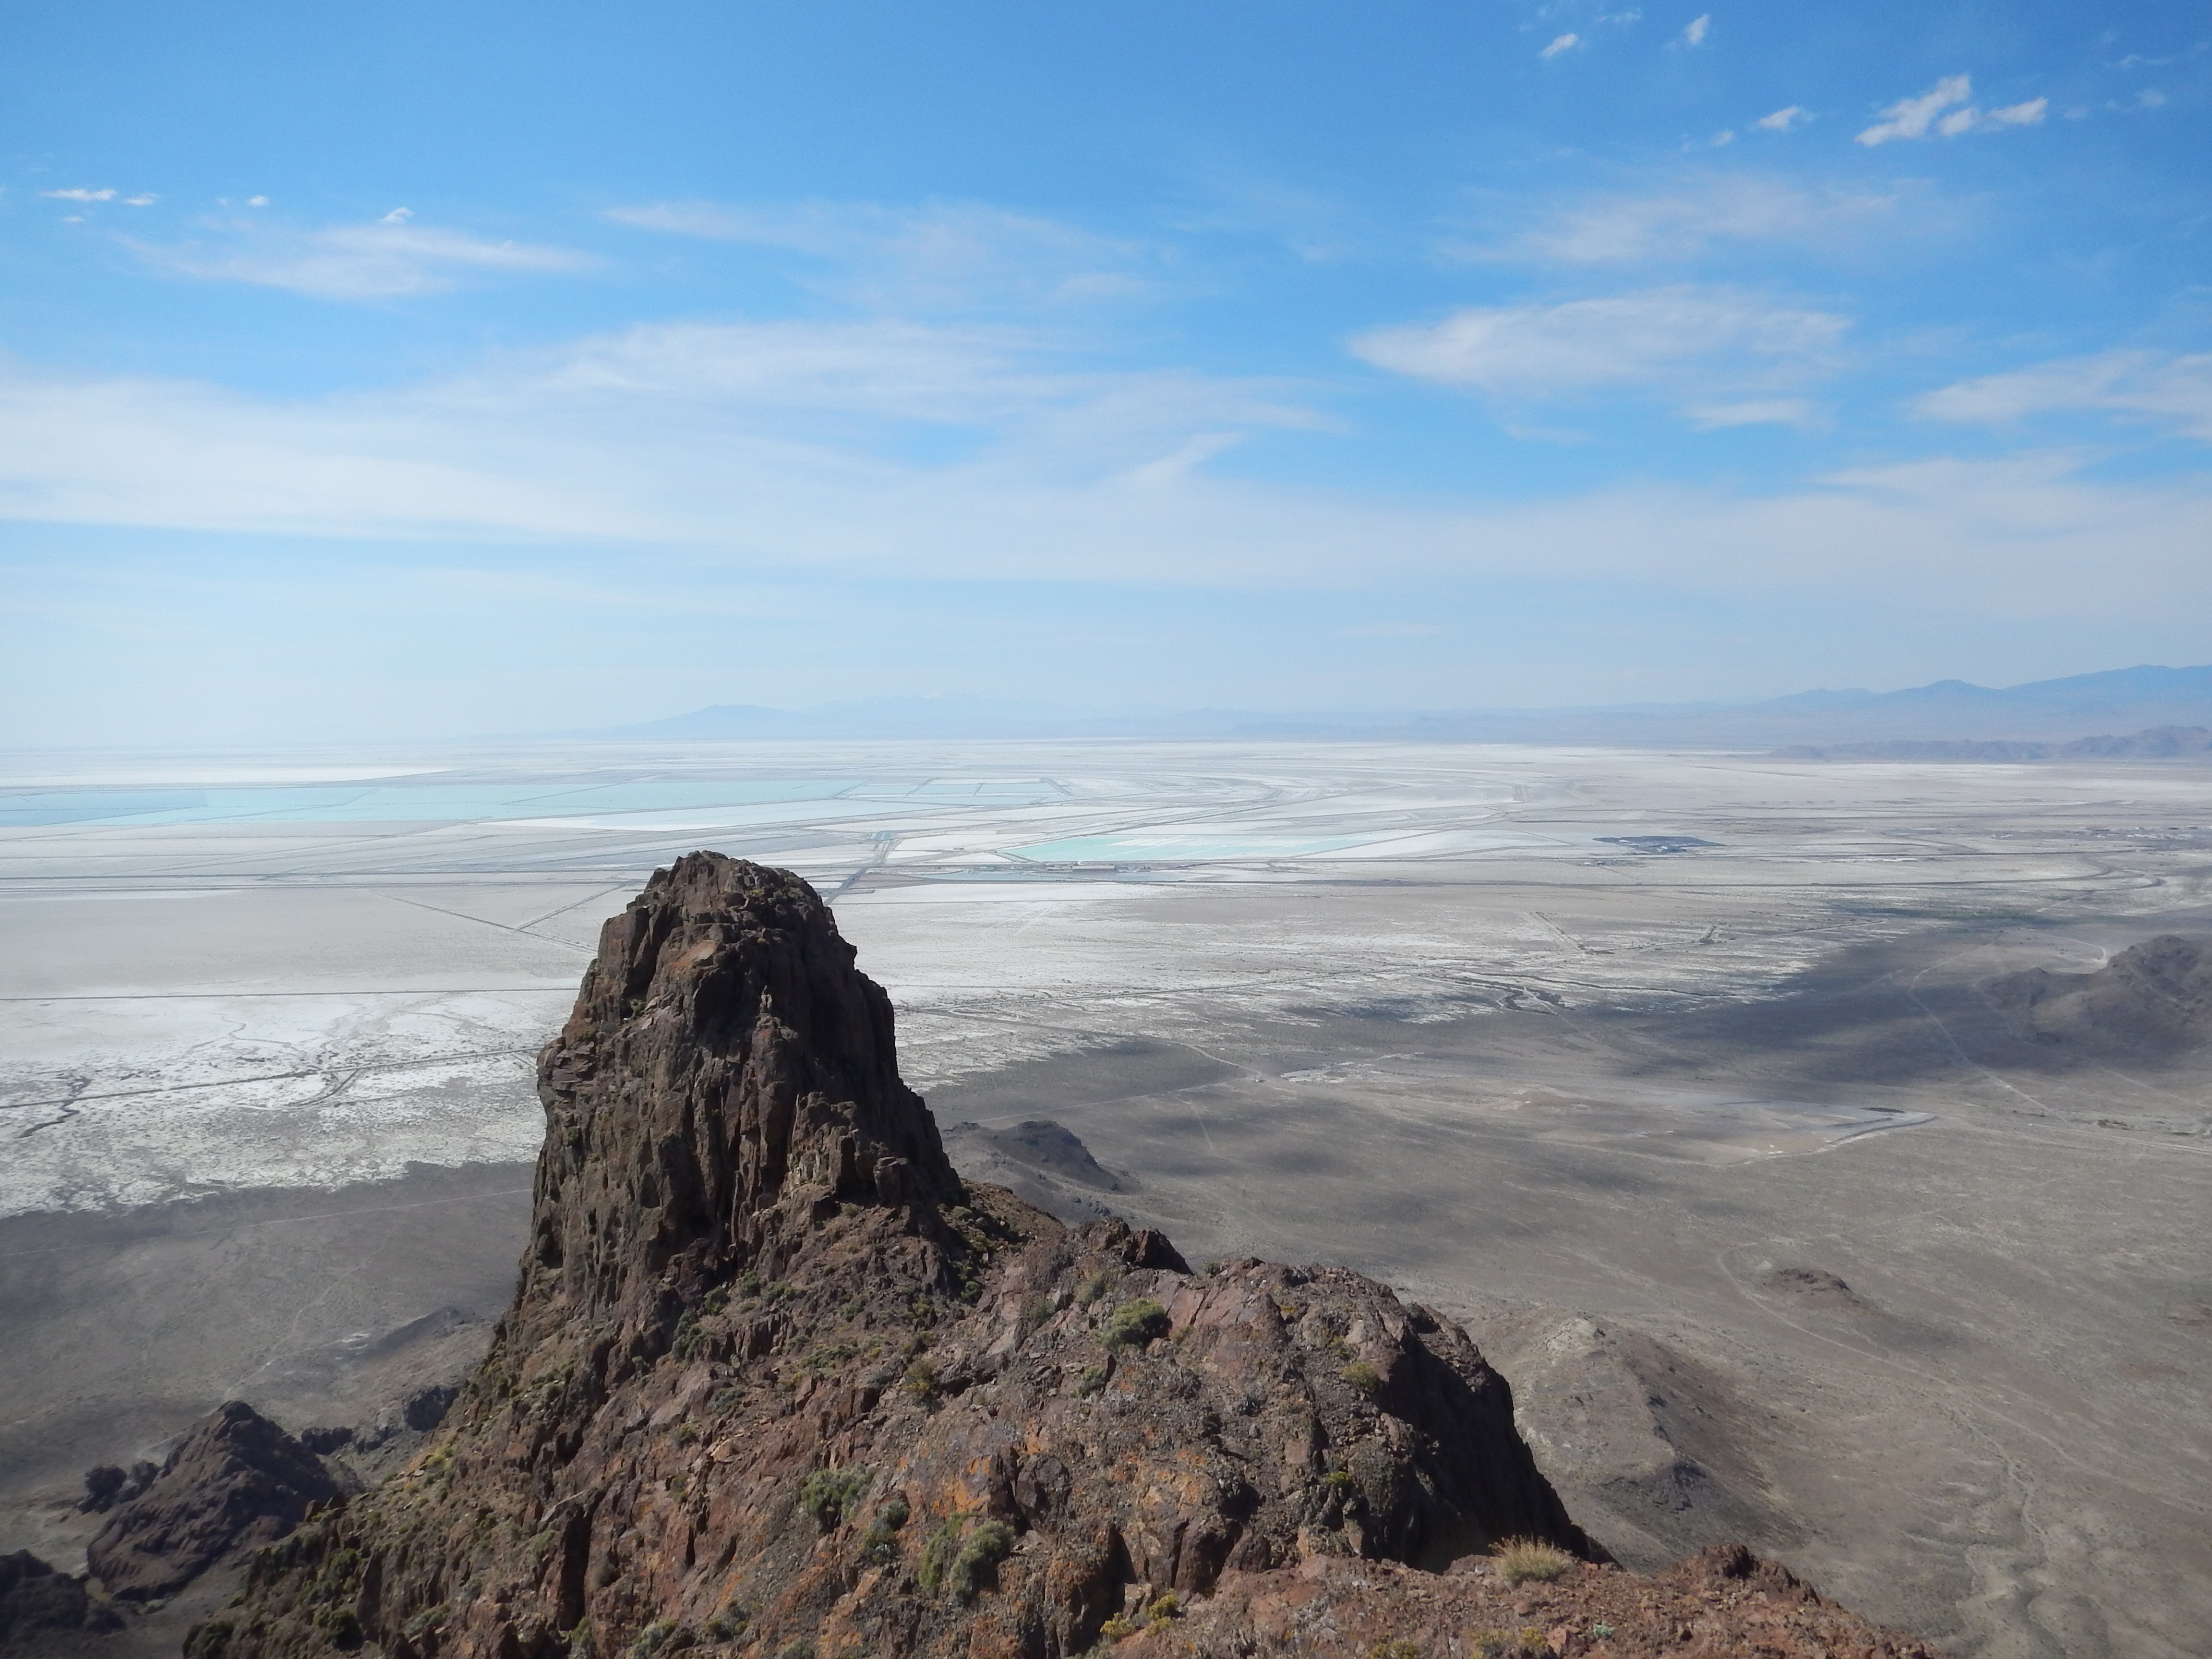 Photo: Overlooking the salt flats and evaporation ponds from the top of Volcano Peak.